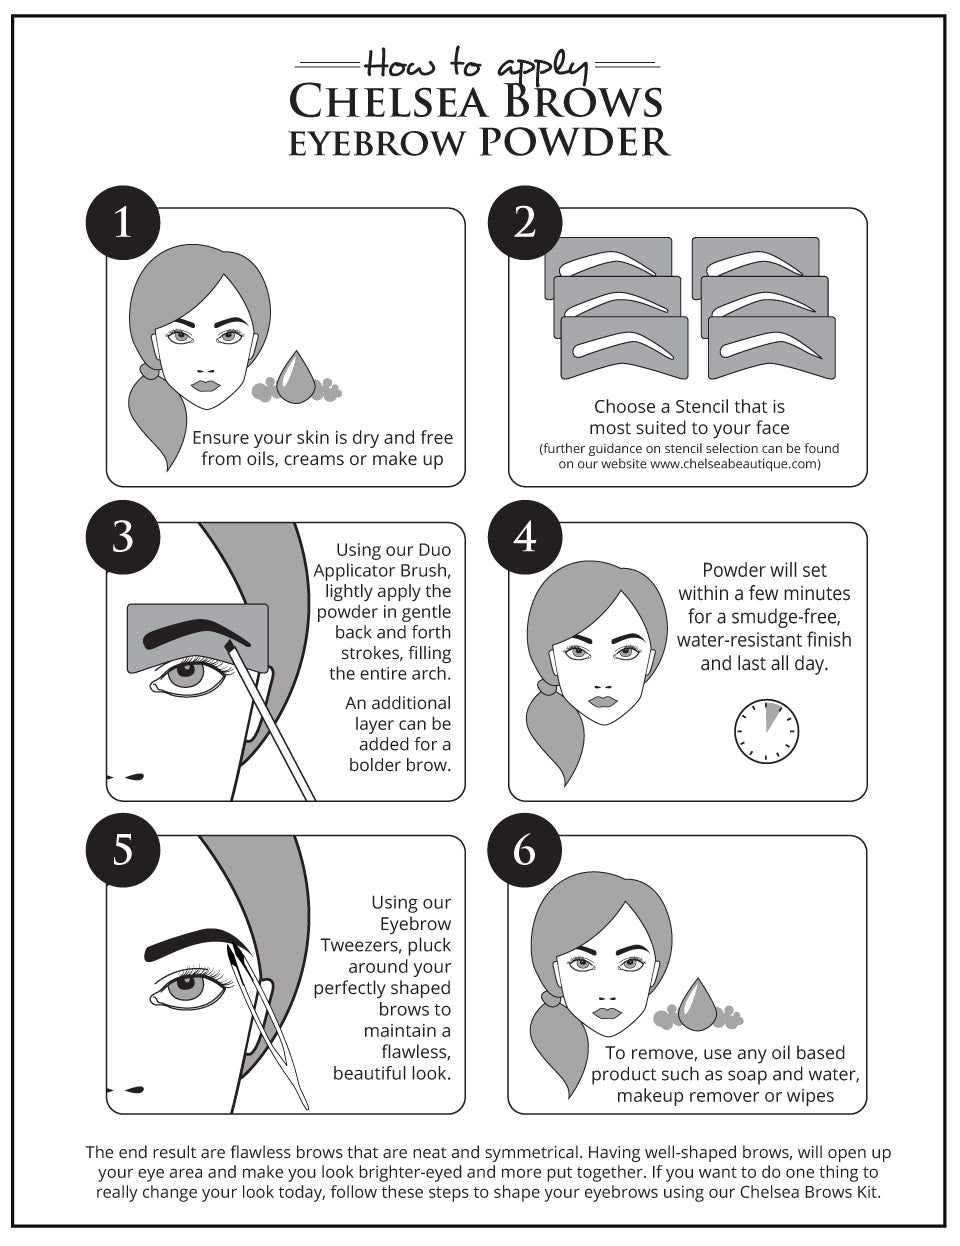 How To Use Eyebrow Stencils Eyebrow Powder For Flawless Brows